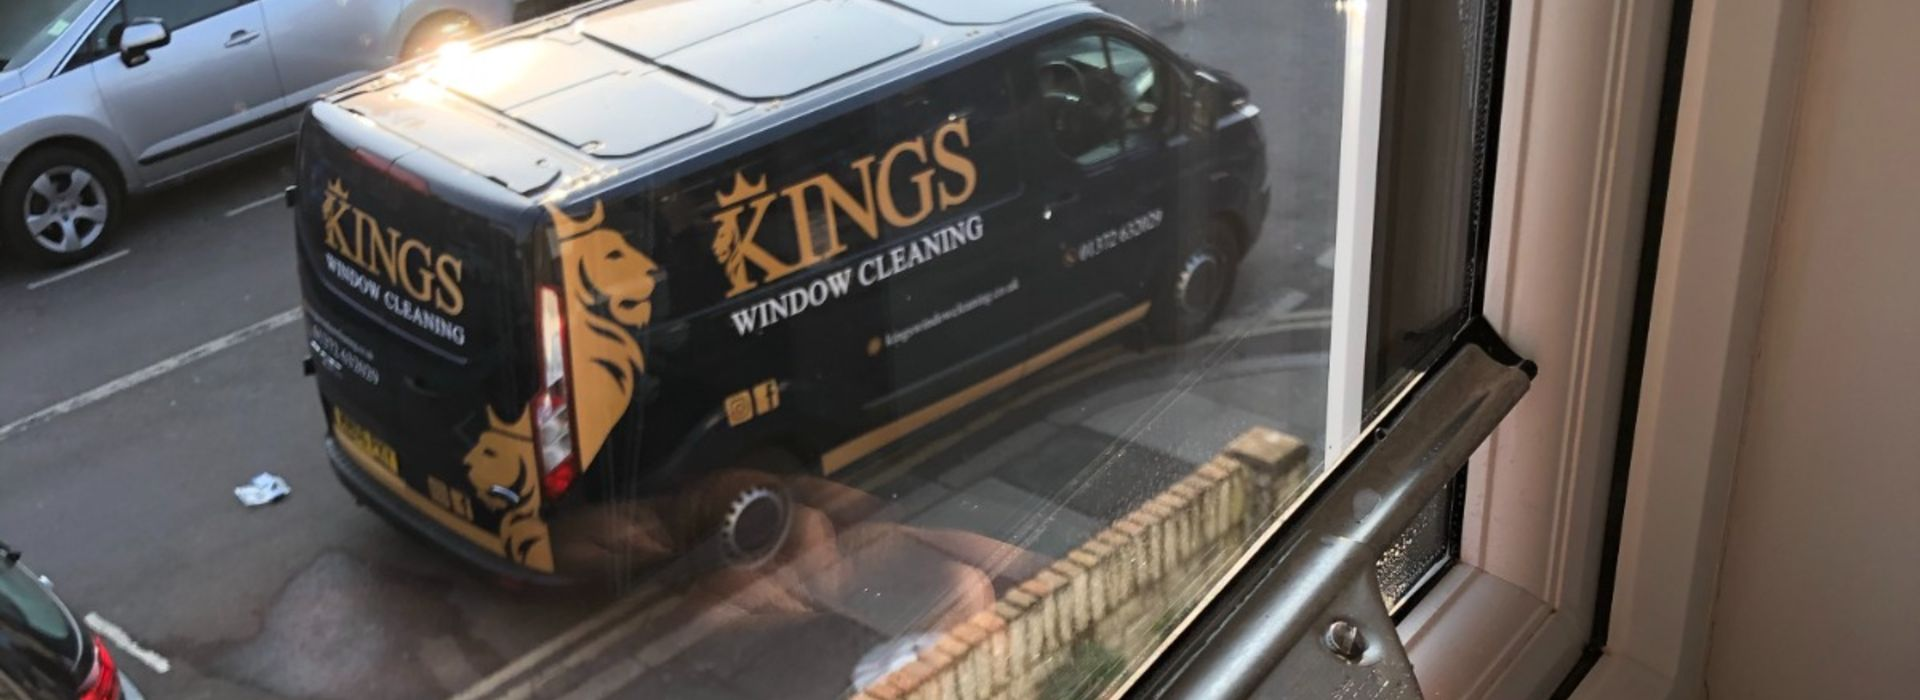 london window cleaning company